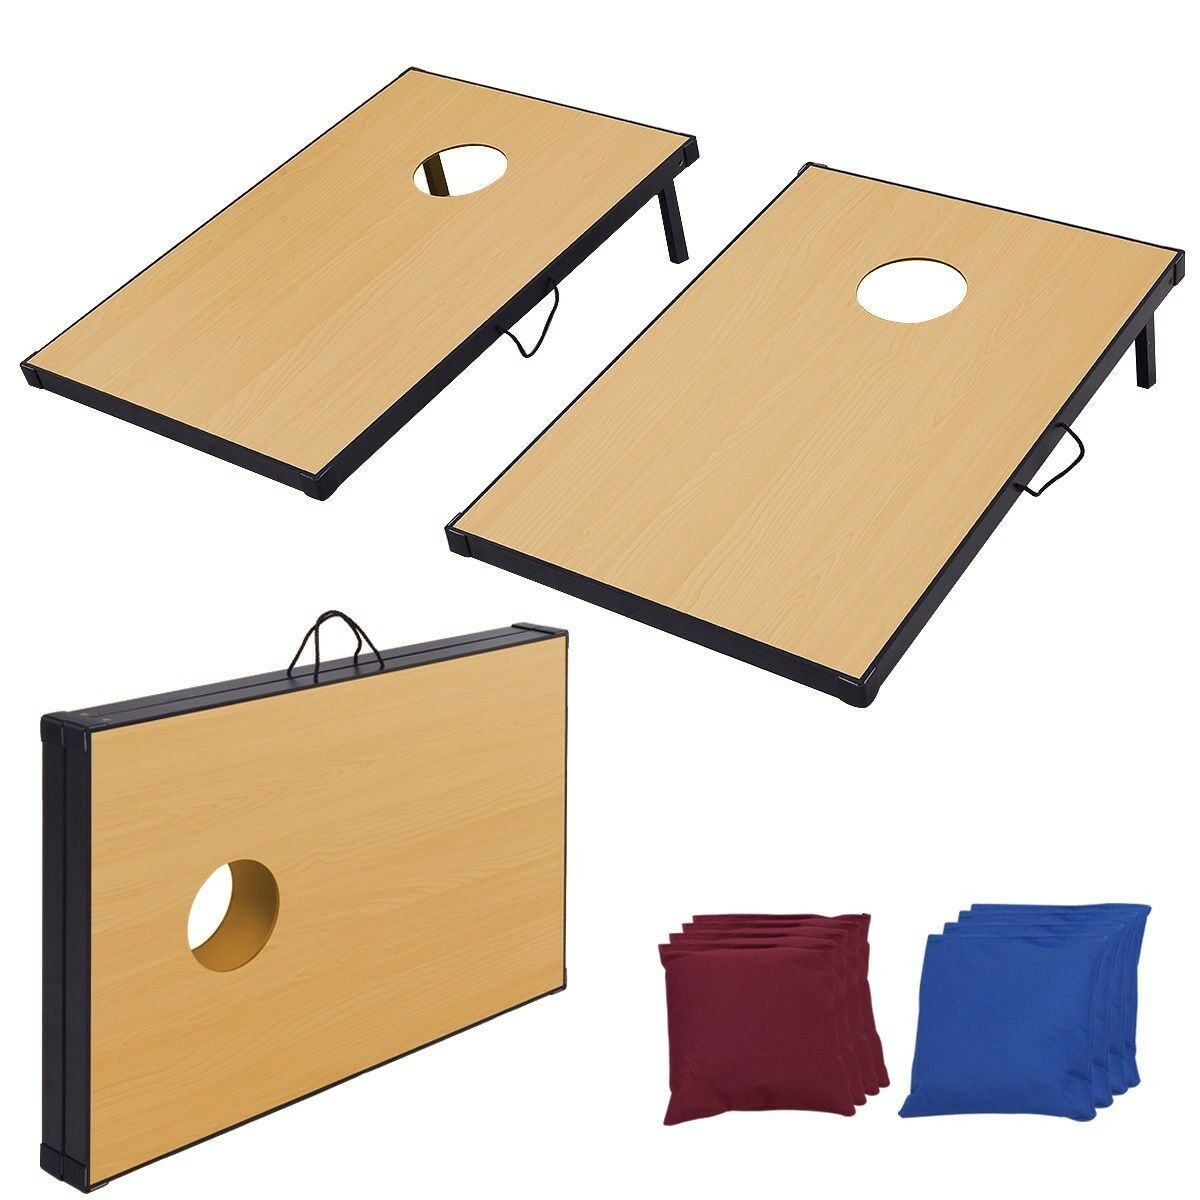 35  Foldable  Wood Bean Bag Toss Cornhole Game Set of 2 Boards and 8 Beanbags  famous brand